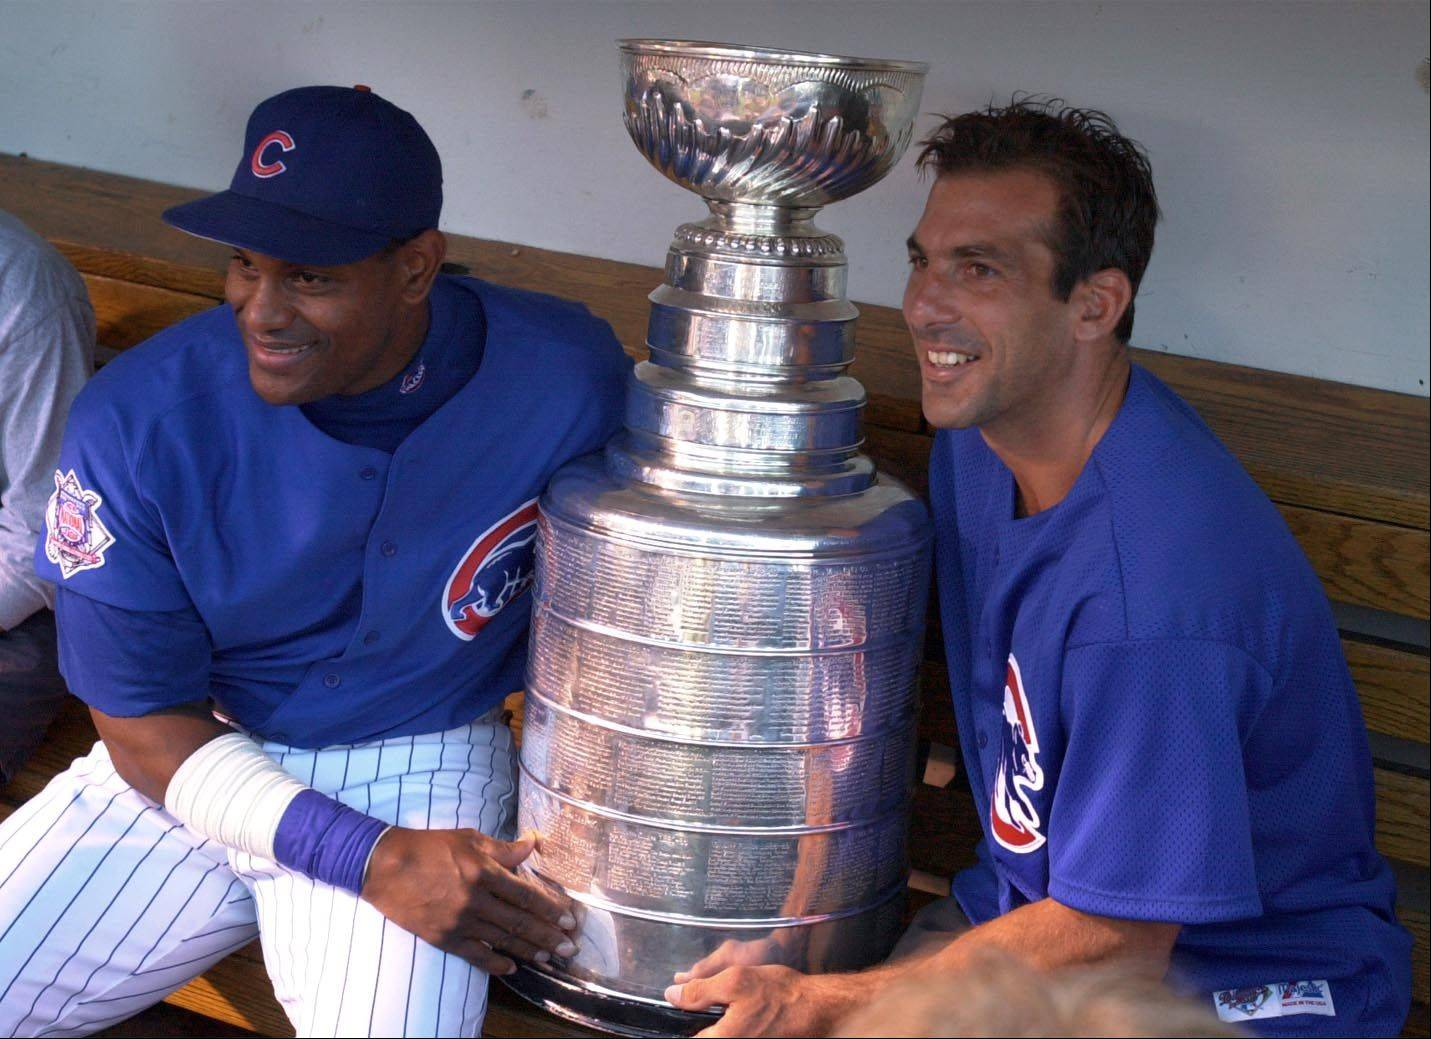 Chris Chelios poses with Sammy Sosa and the Stanley Cup during a Cubs game against Milwaukee.